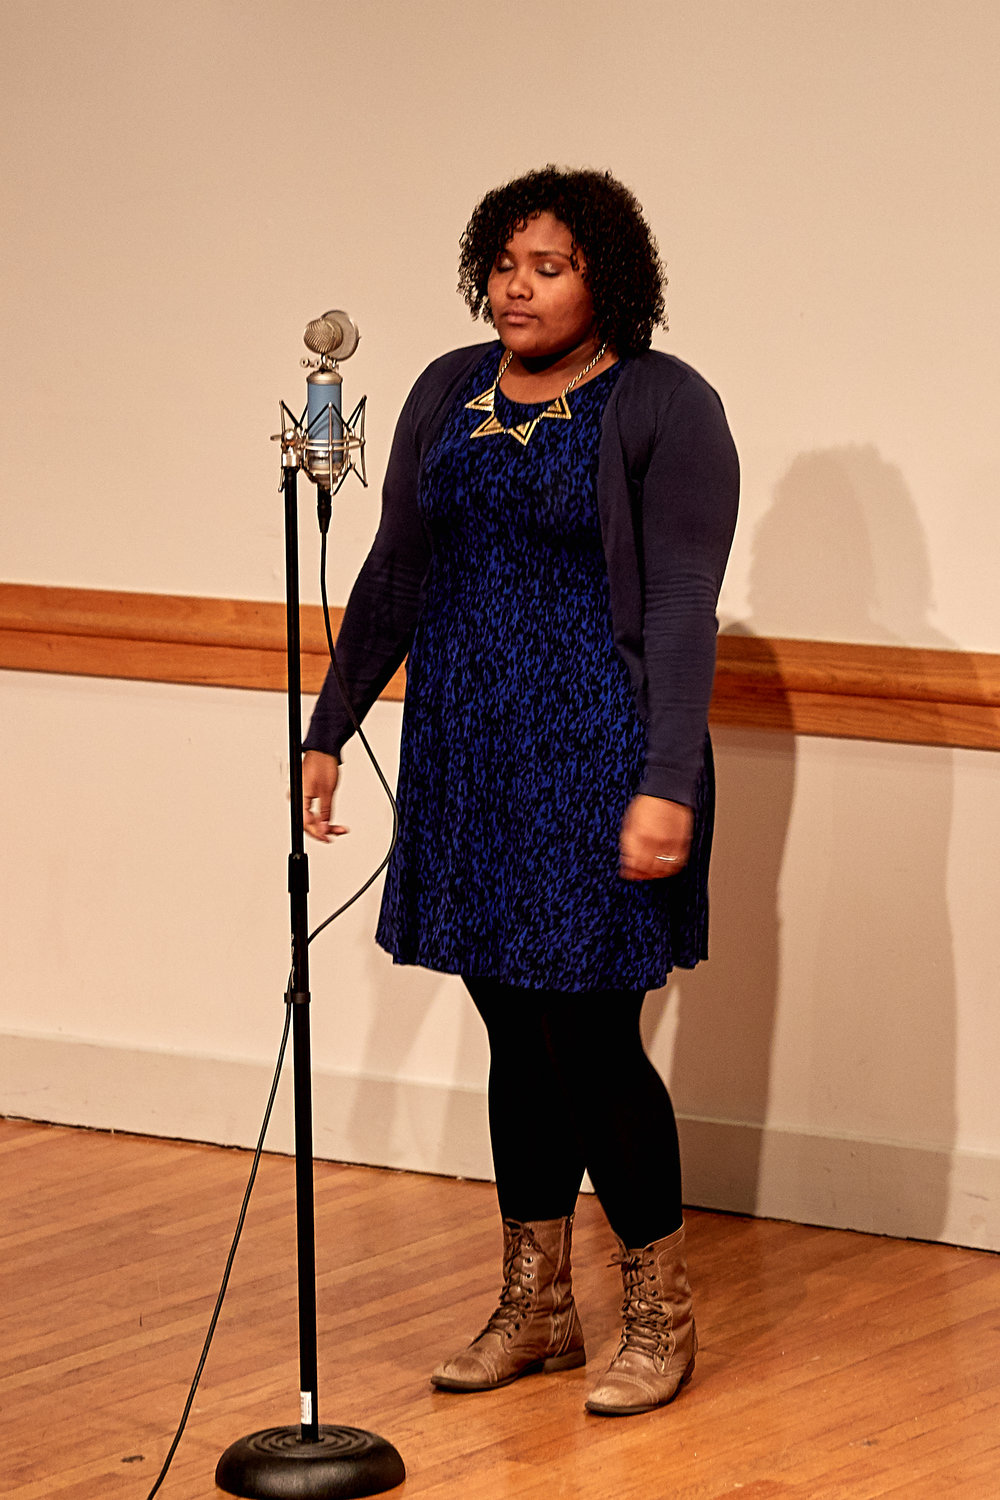 Destiny Goncalves (Brockton, MA) competing in Poetry Our Loud festival.